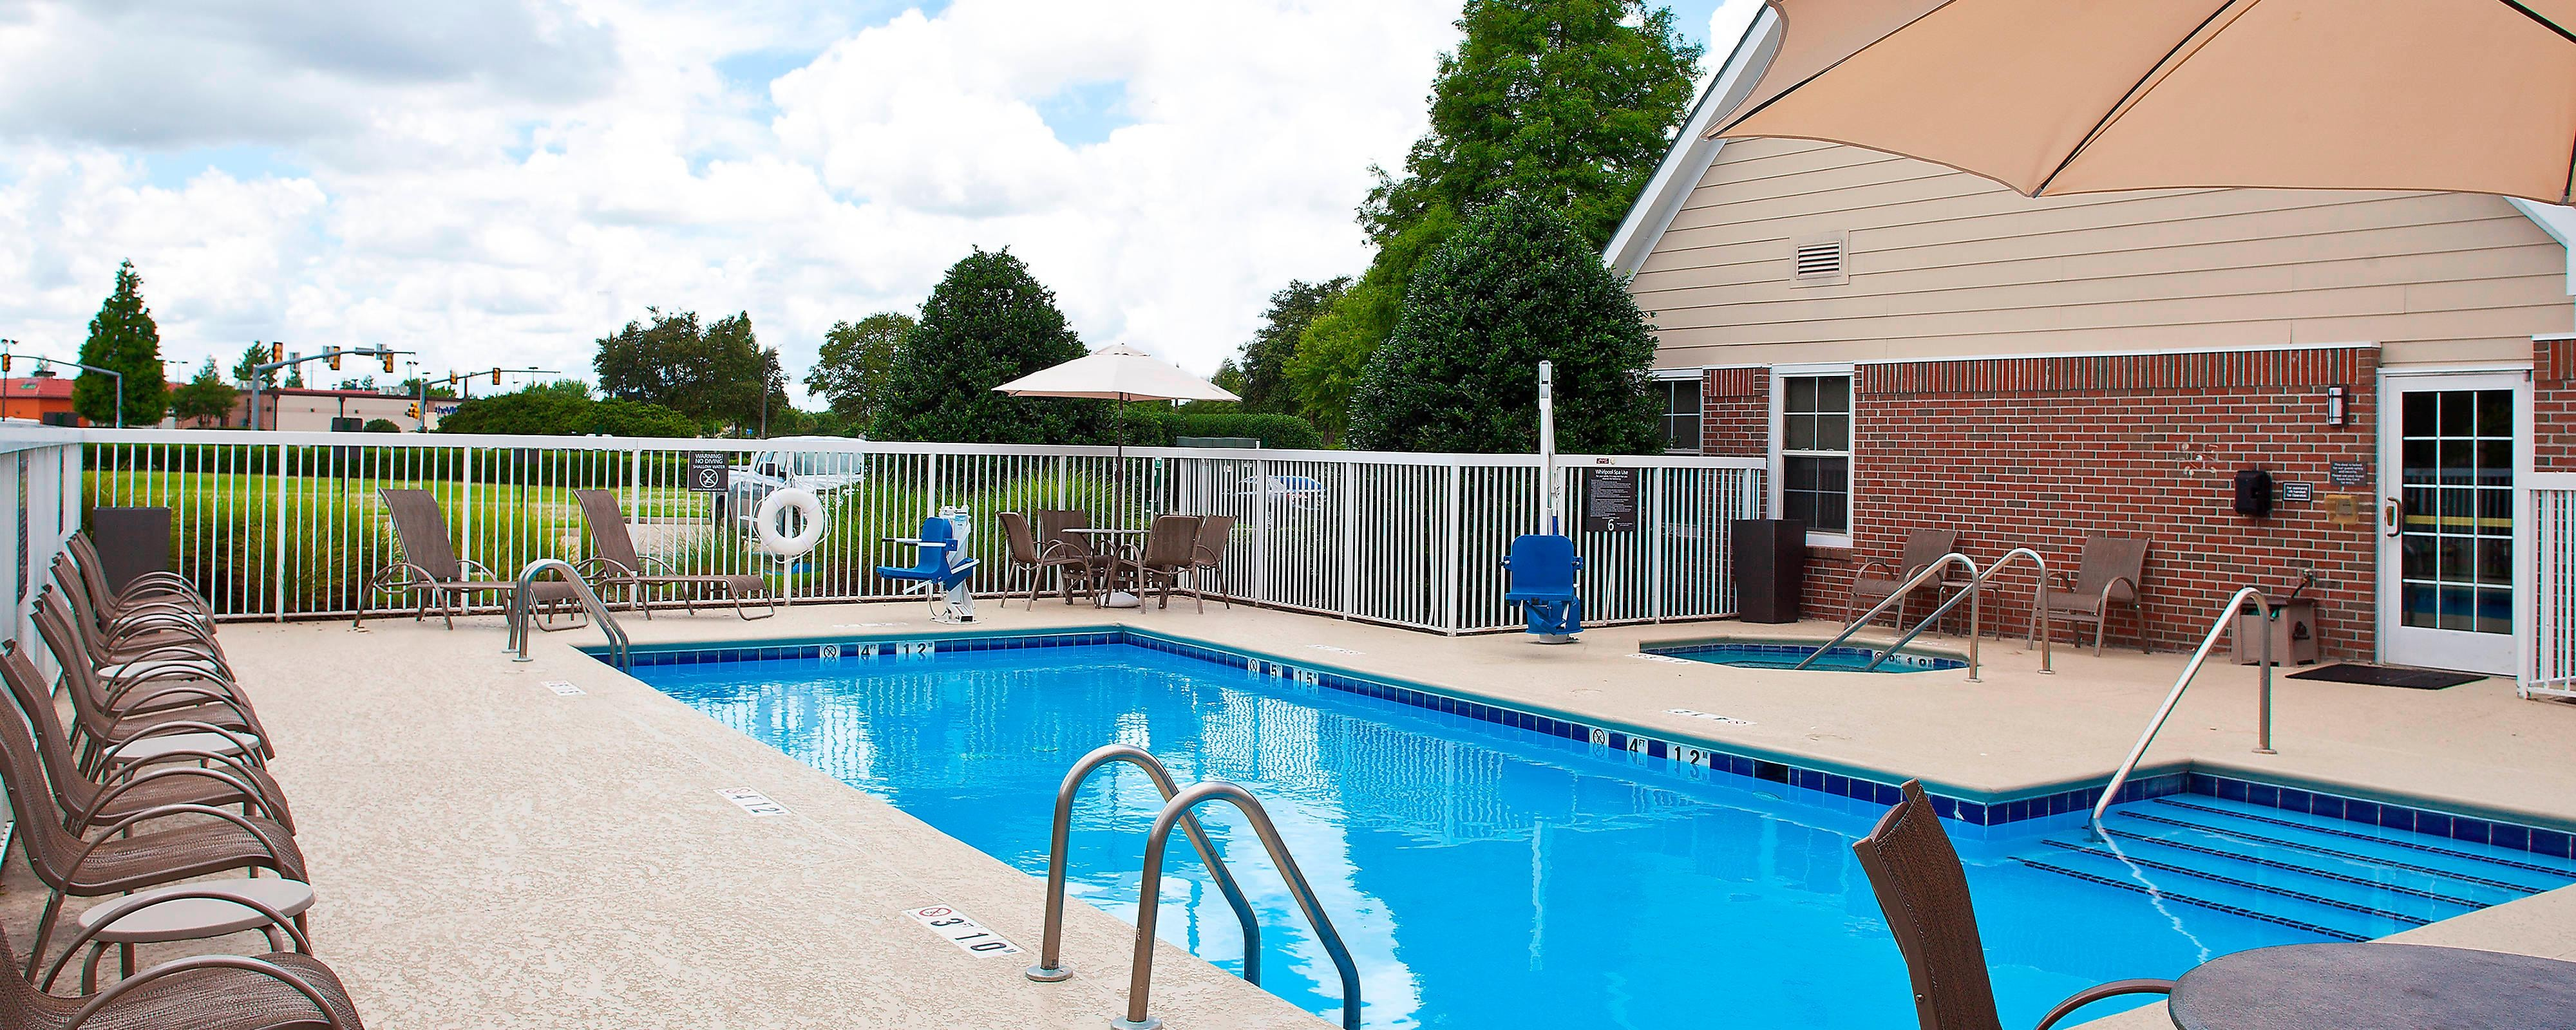 Residence Inn Baton Rouge Outdoor Pool